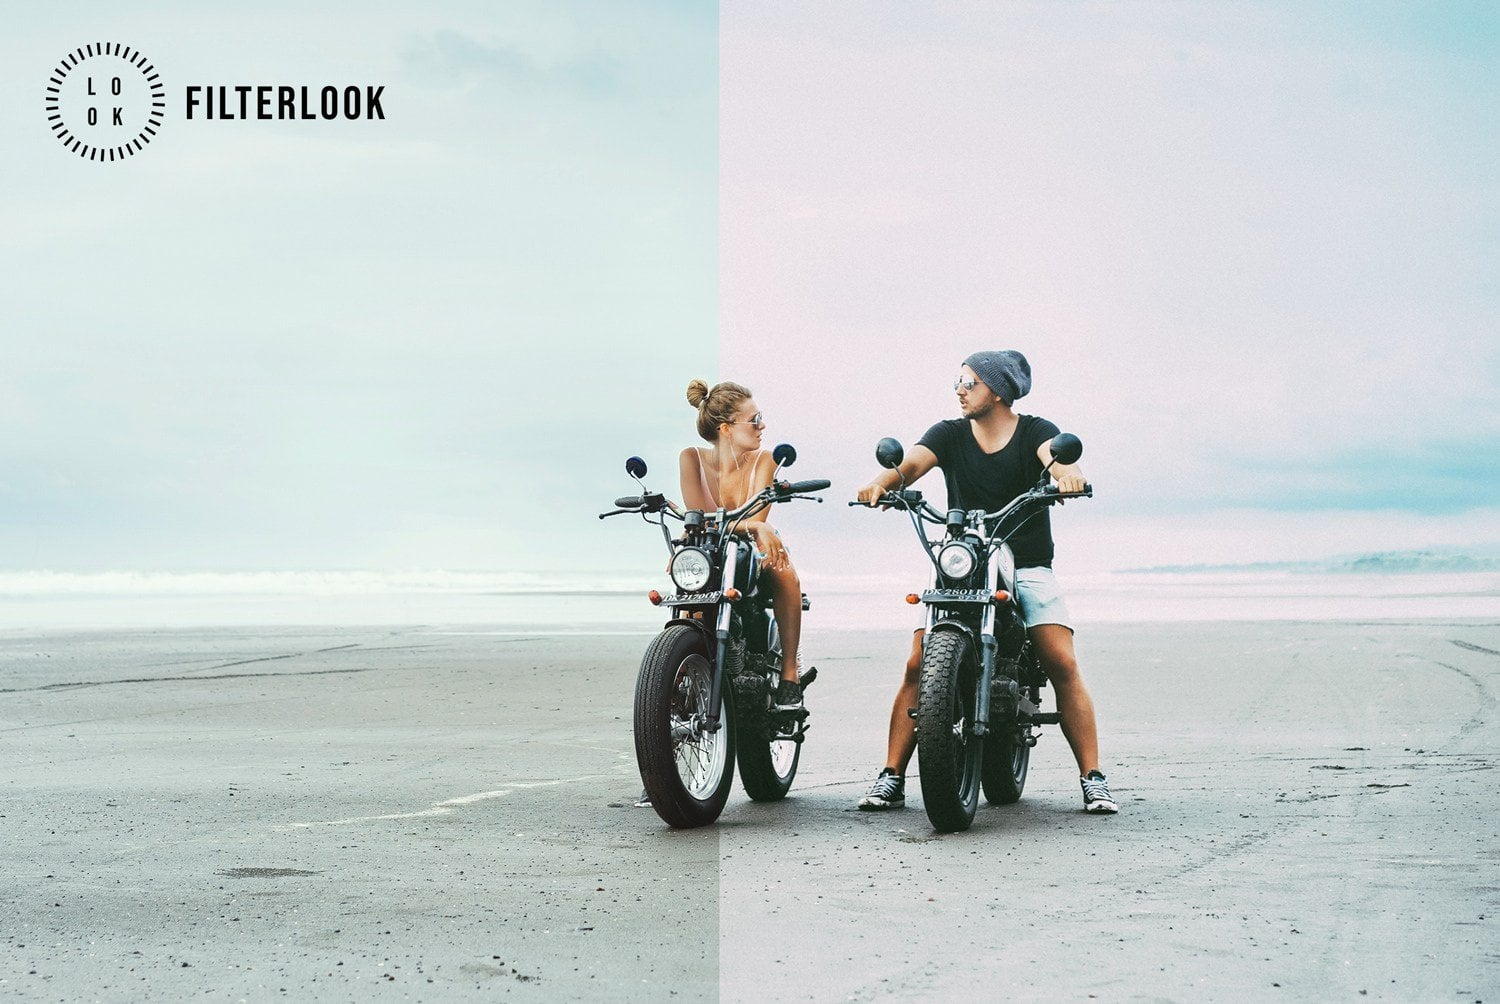 Free-Lightroom-Preset-Matte-Film-Before-and-After-Filterlook.com